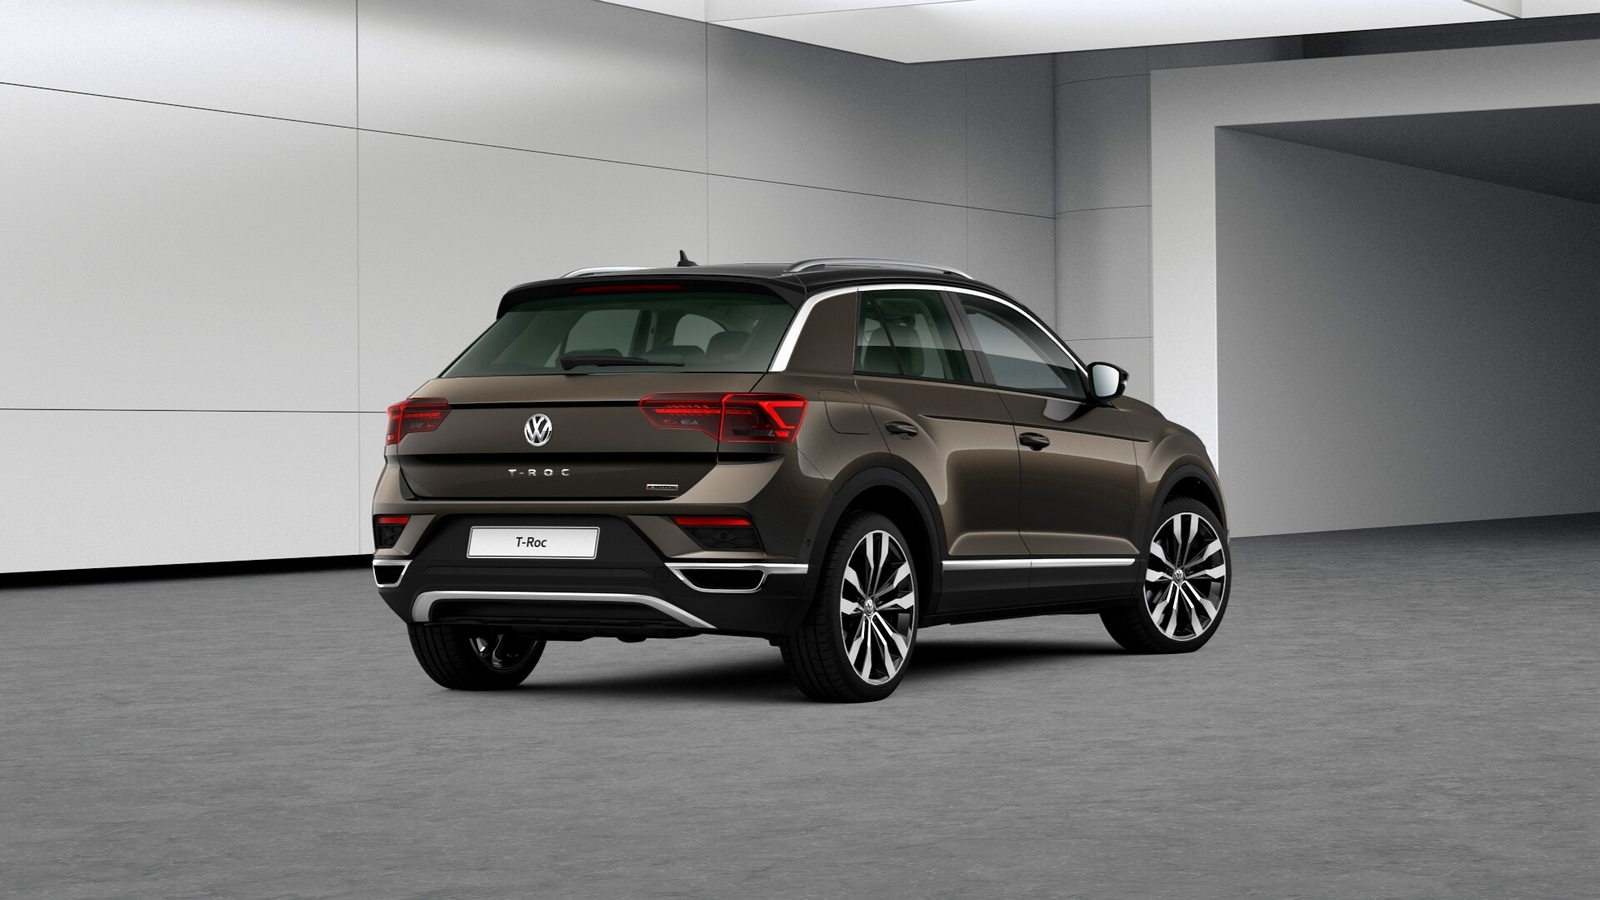 volkswagen t roc carat exclusive 5 the automobilist. Black Bedroom Furniture Sets. Home Design Ideas